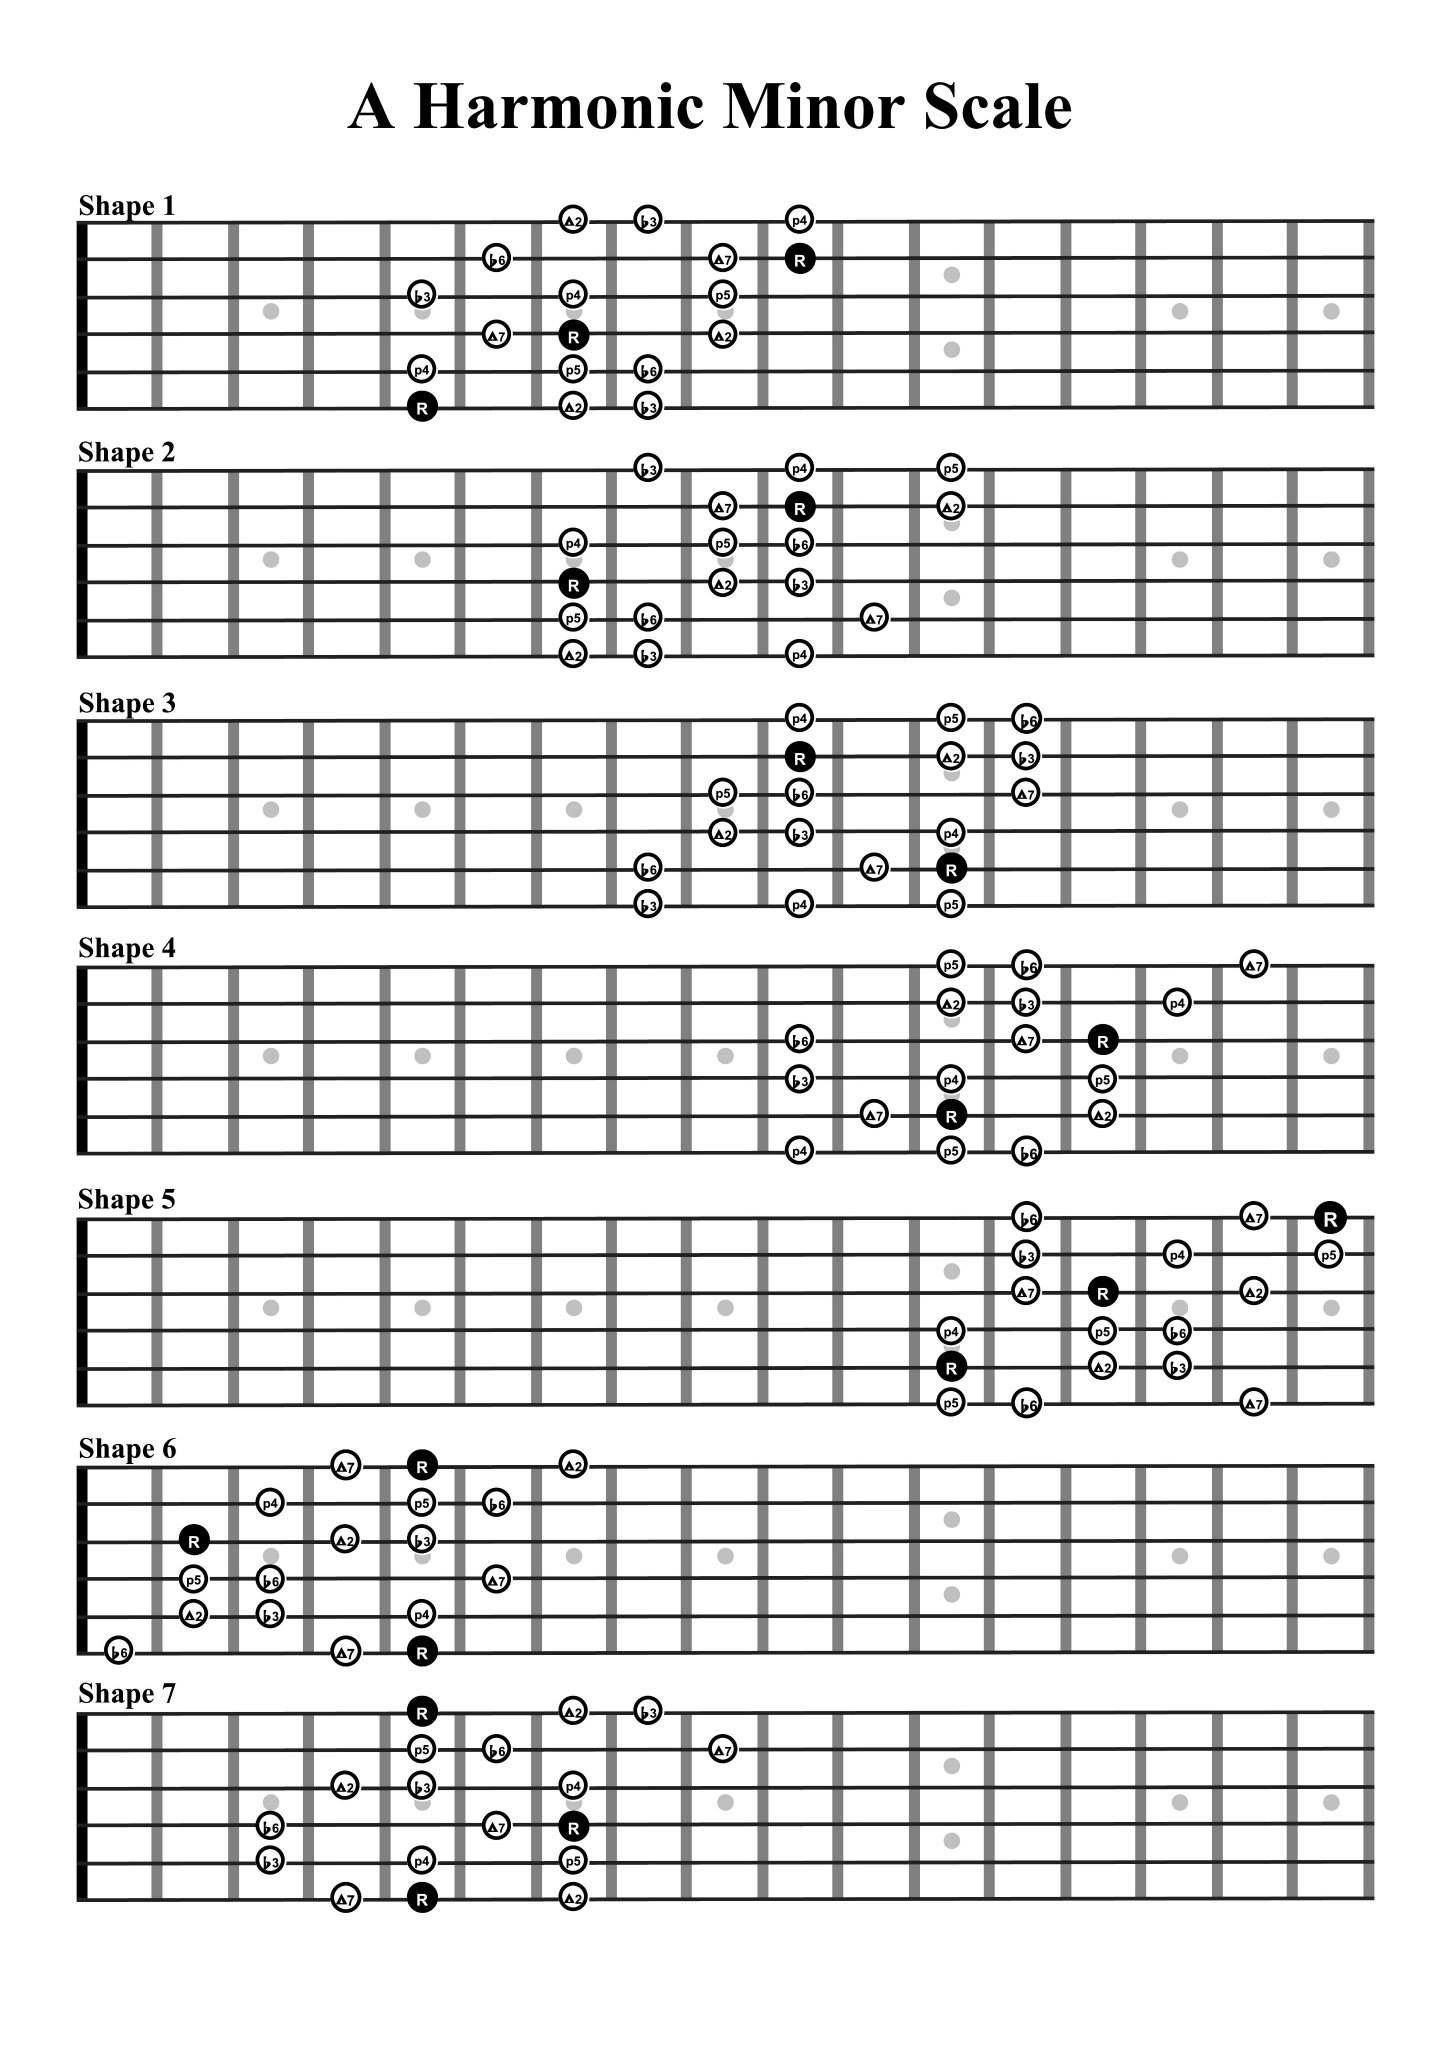 Pin By Benelli2912 On Guitar Chords Pinterest Guitars Guitar